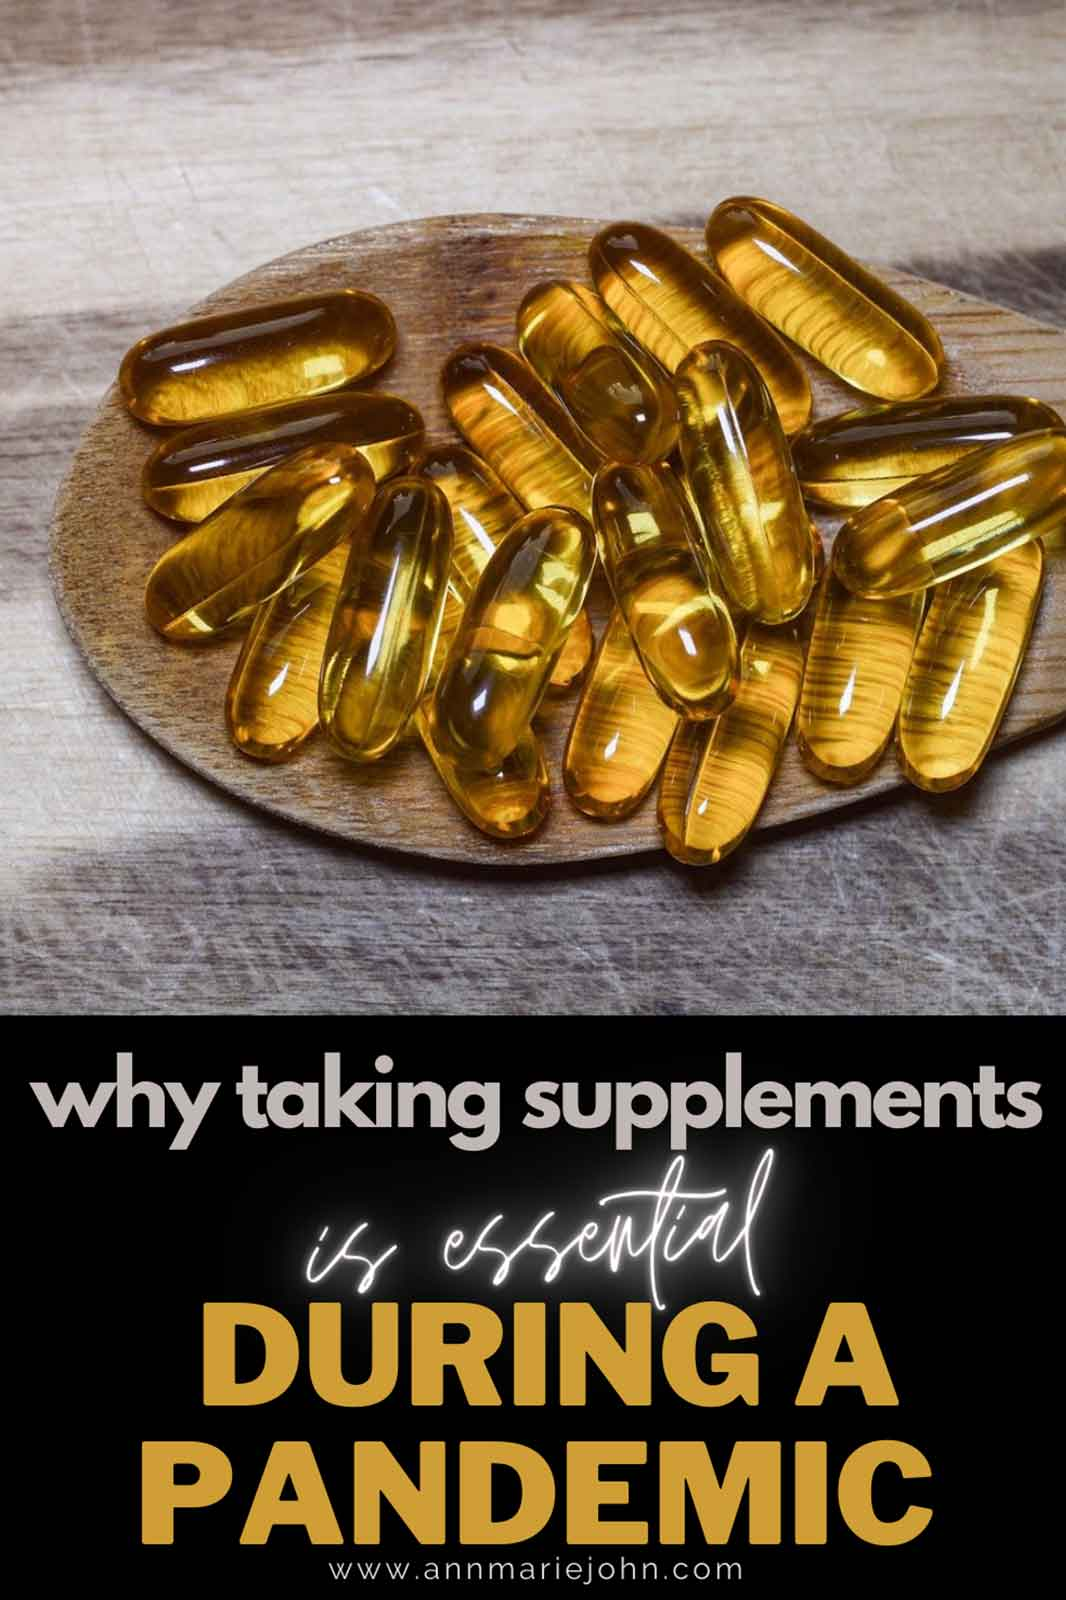 Why Taking Supplements During the Pandemic is Essential